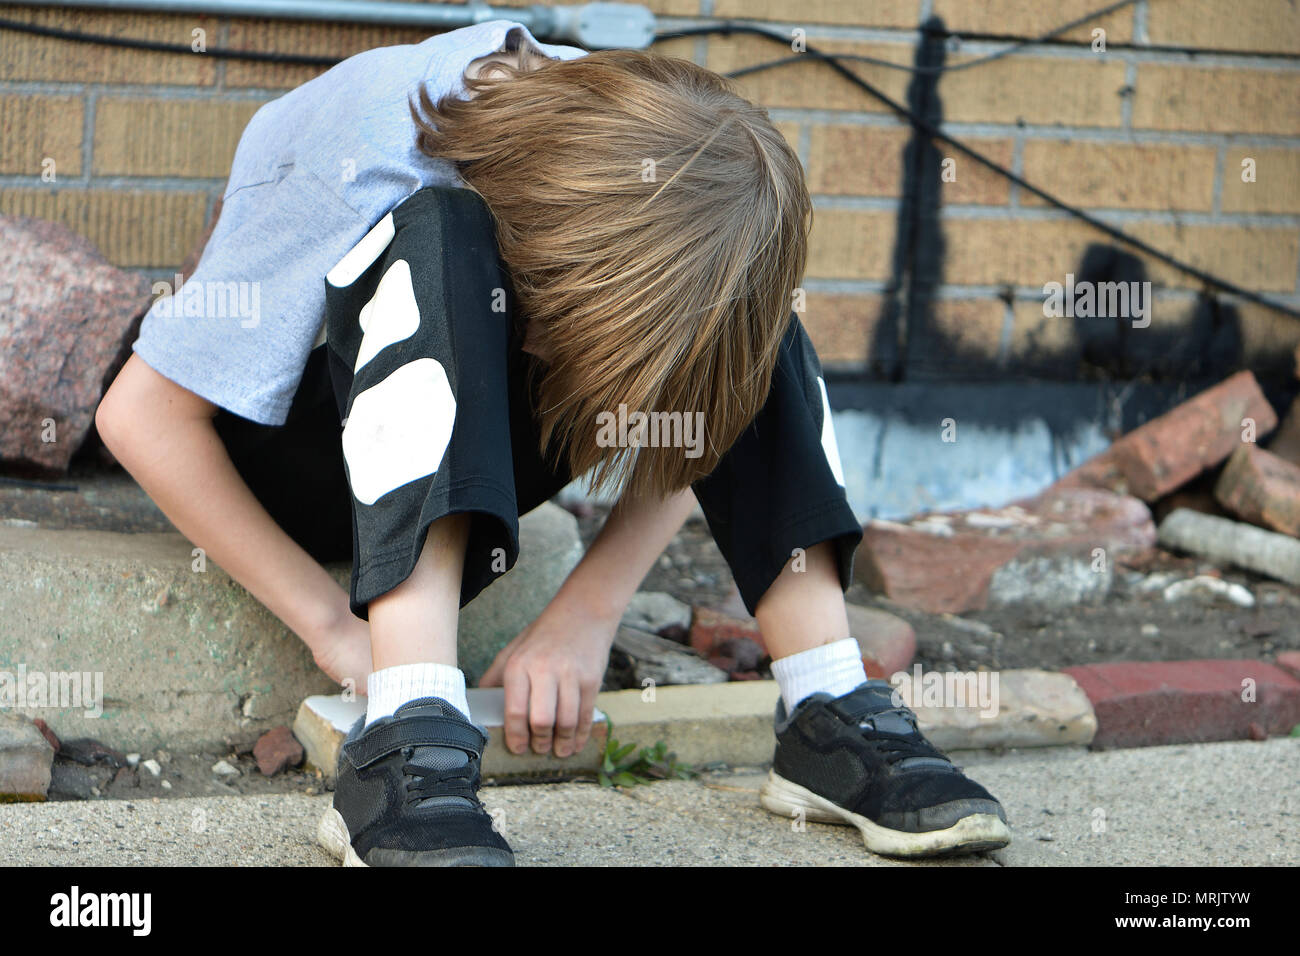 young boy defeated, down and out - Stock Image